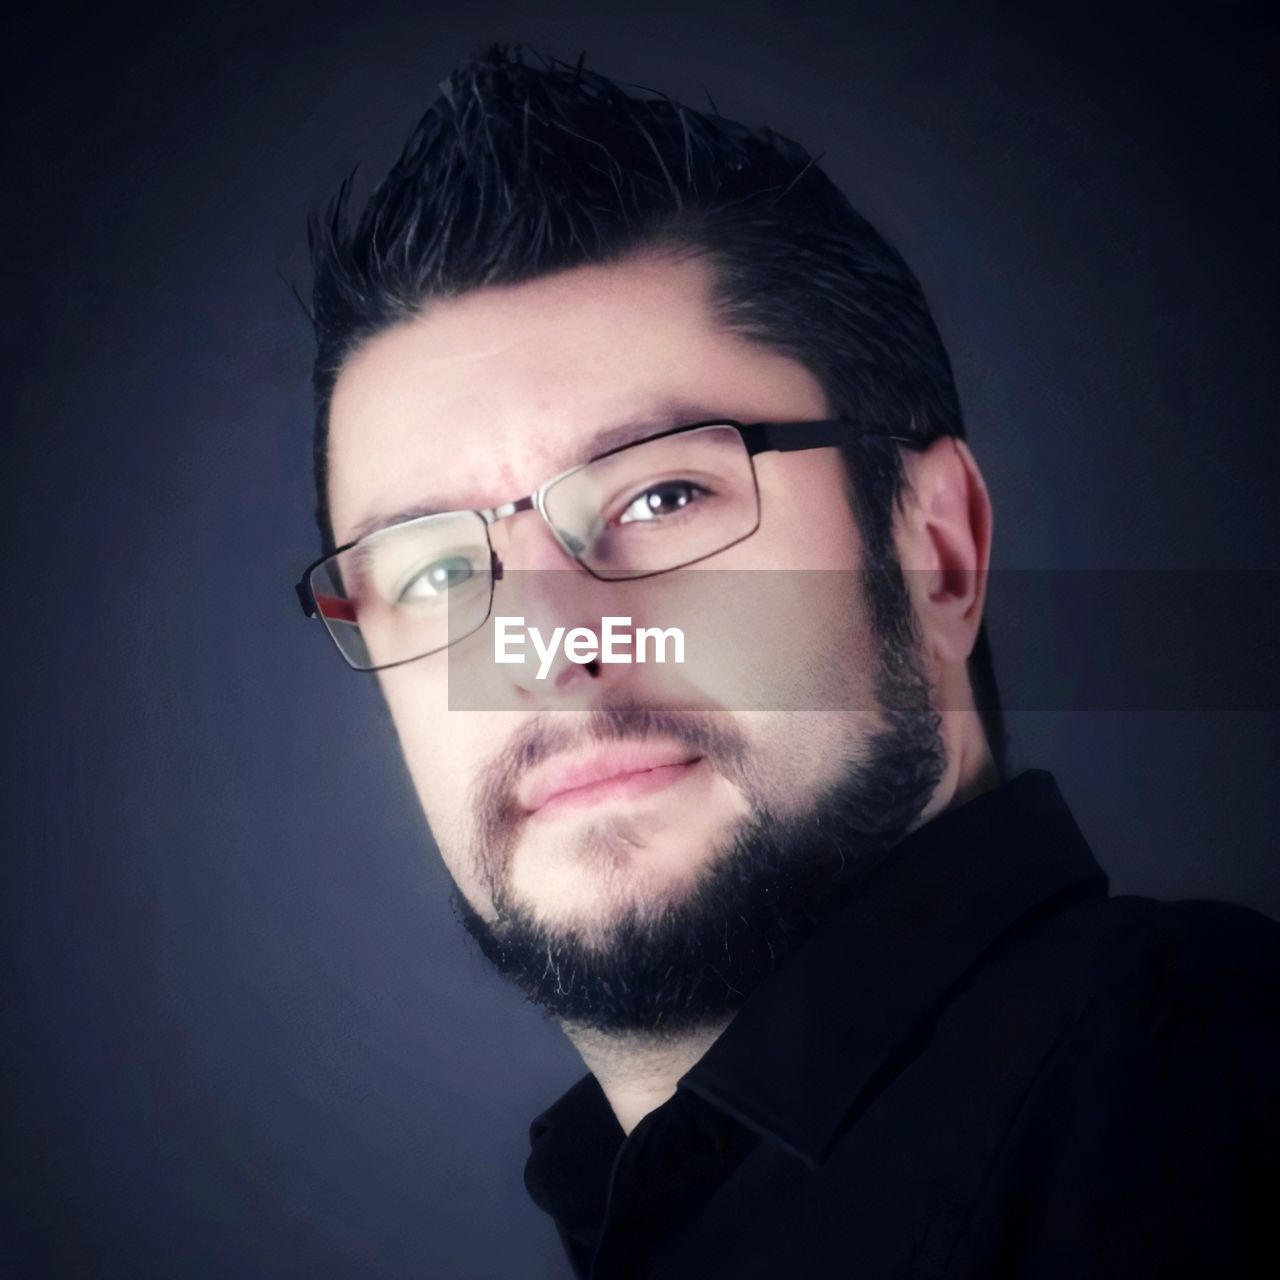 PORTRAIT OF YOUNG MAN WITH EYEGLASSES AGAINST BLACK BACKGROUND